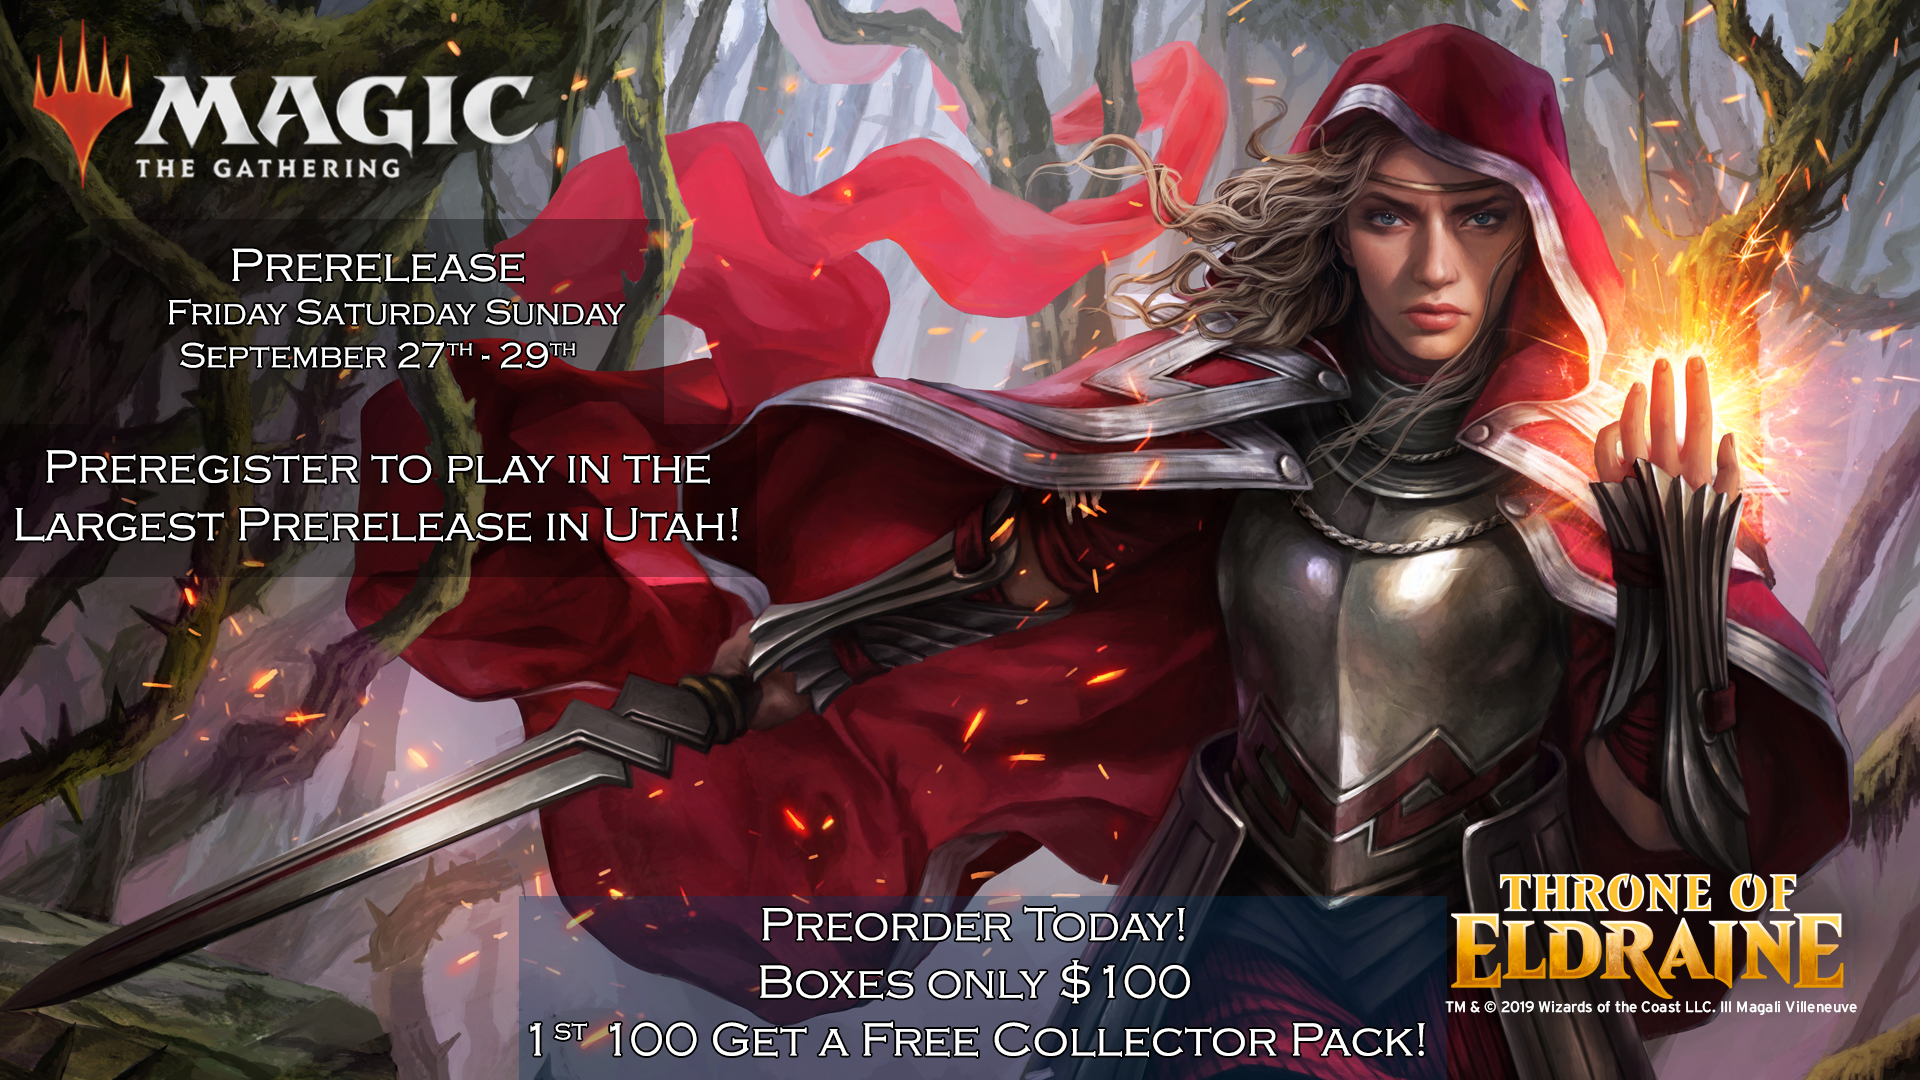 Friday Midnight Prerelease - WIN A BOX!